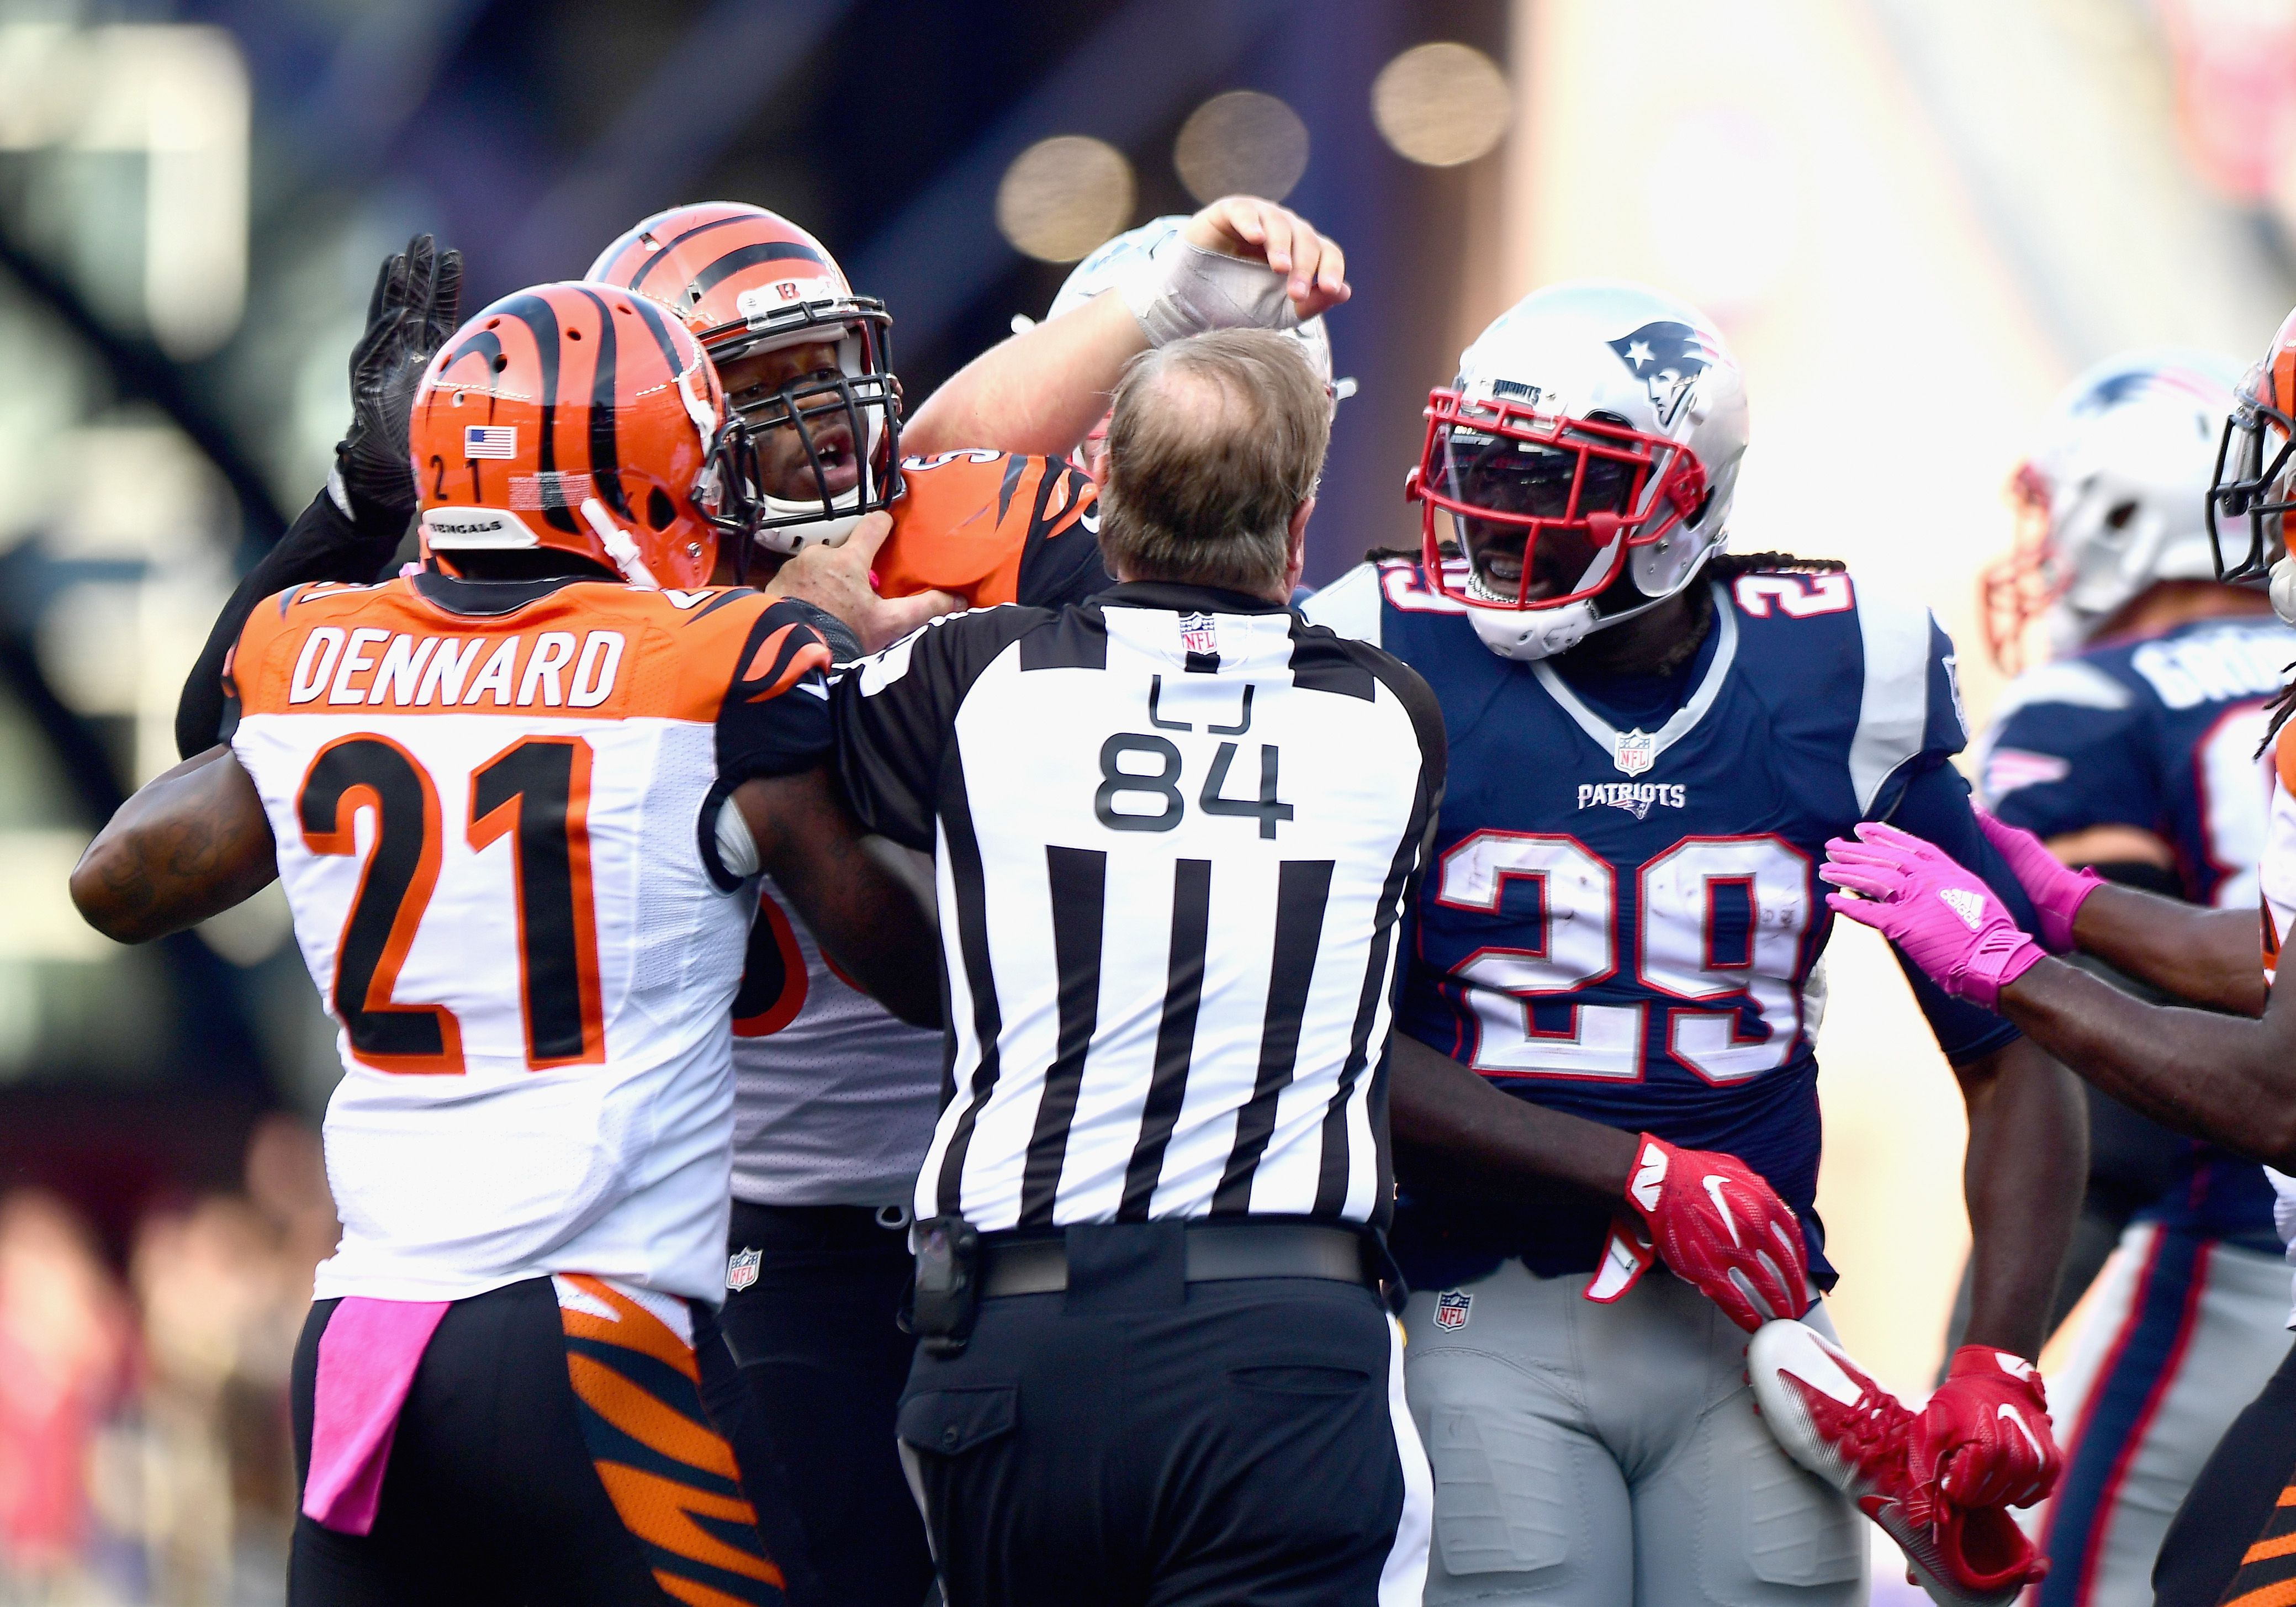 Patriots players fined for actions in Bengals game - The